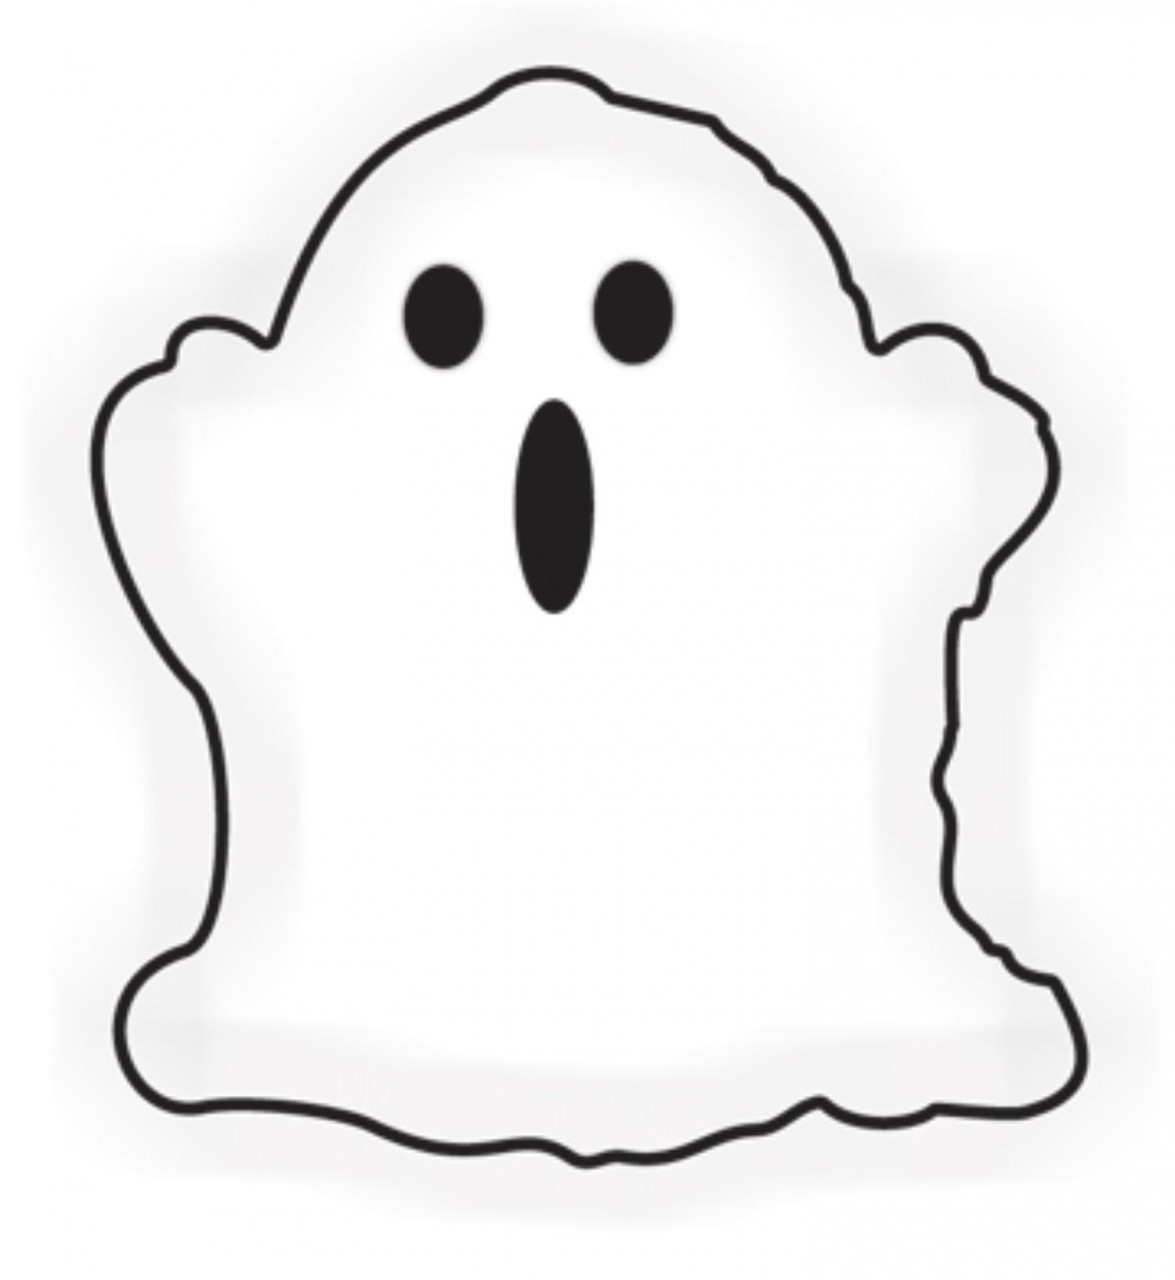 15 cute ghost pics free cliparts that you can download to you computer ...